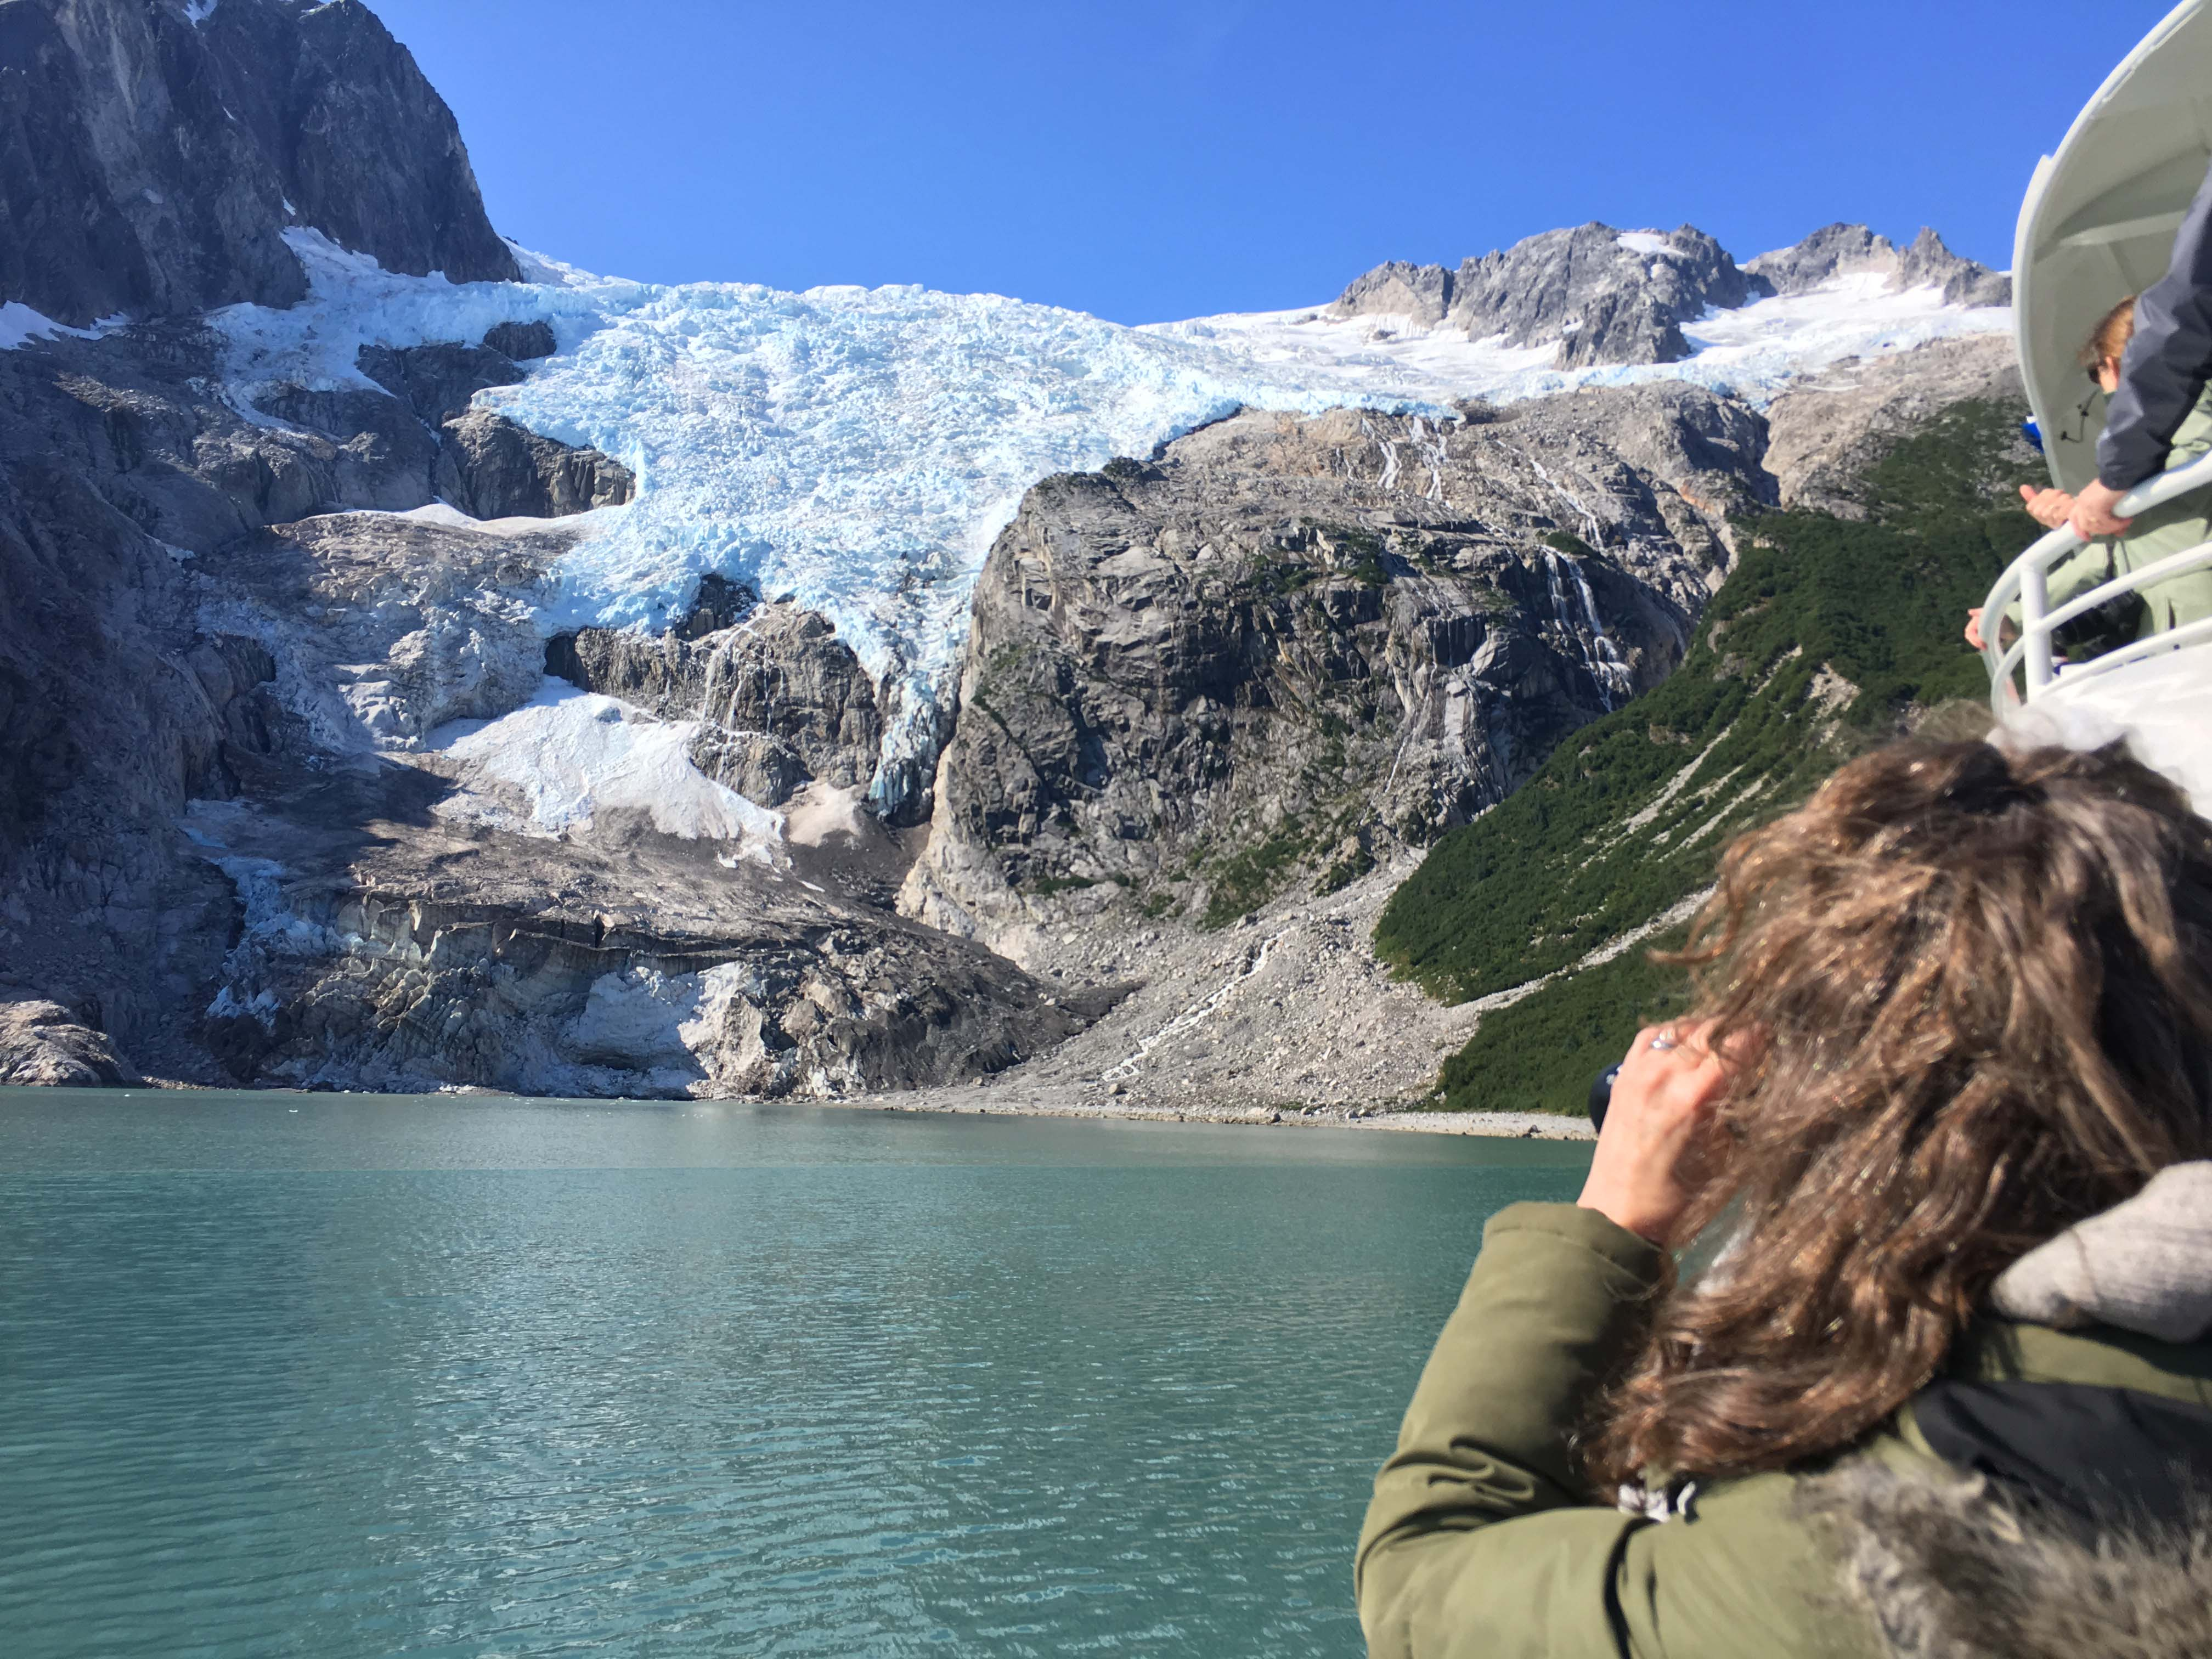 A student looks through binoculars at a looming blue glacier